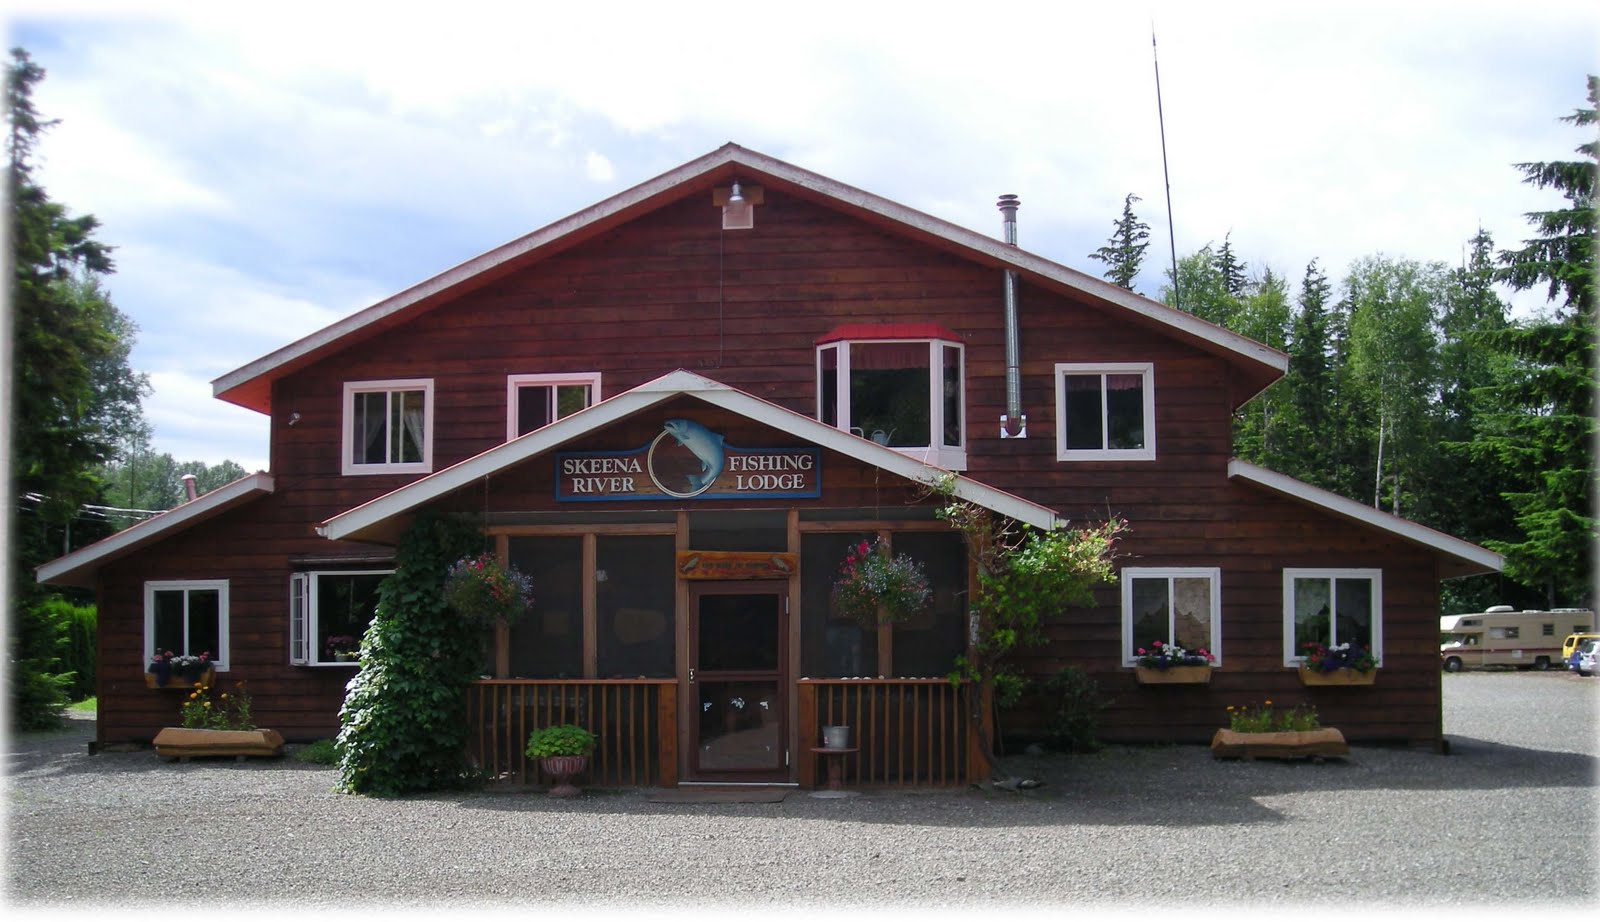 Skeena river fishing lodge the skeena river situated in northwest british columbia canada is a river of record salmon every year anglers from around the world have a good chance to sciox Image collections